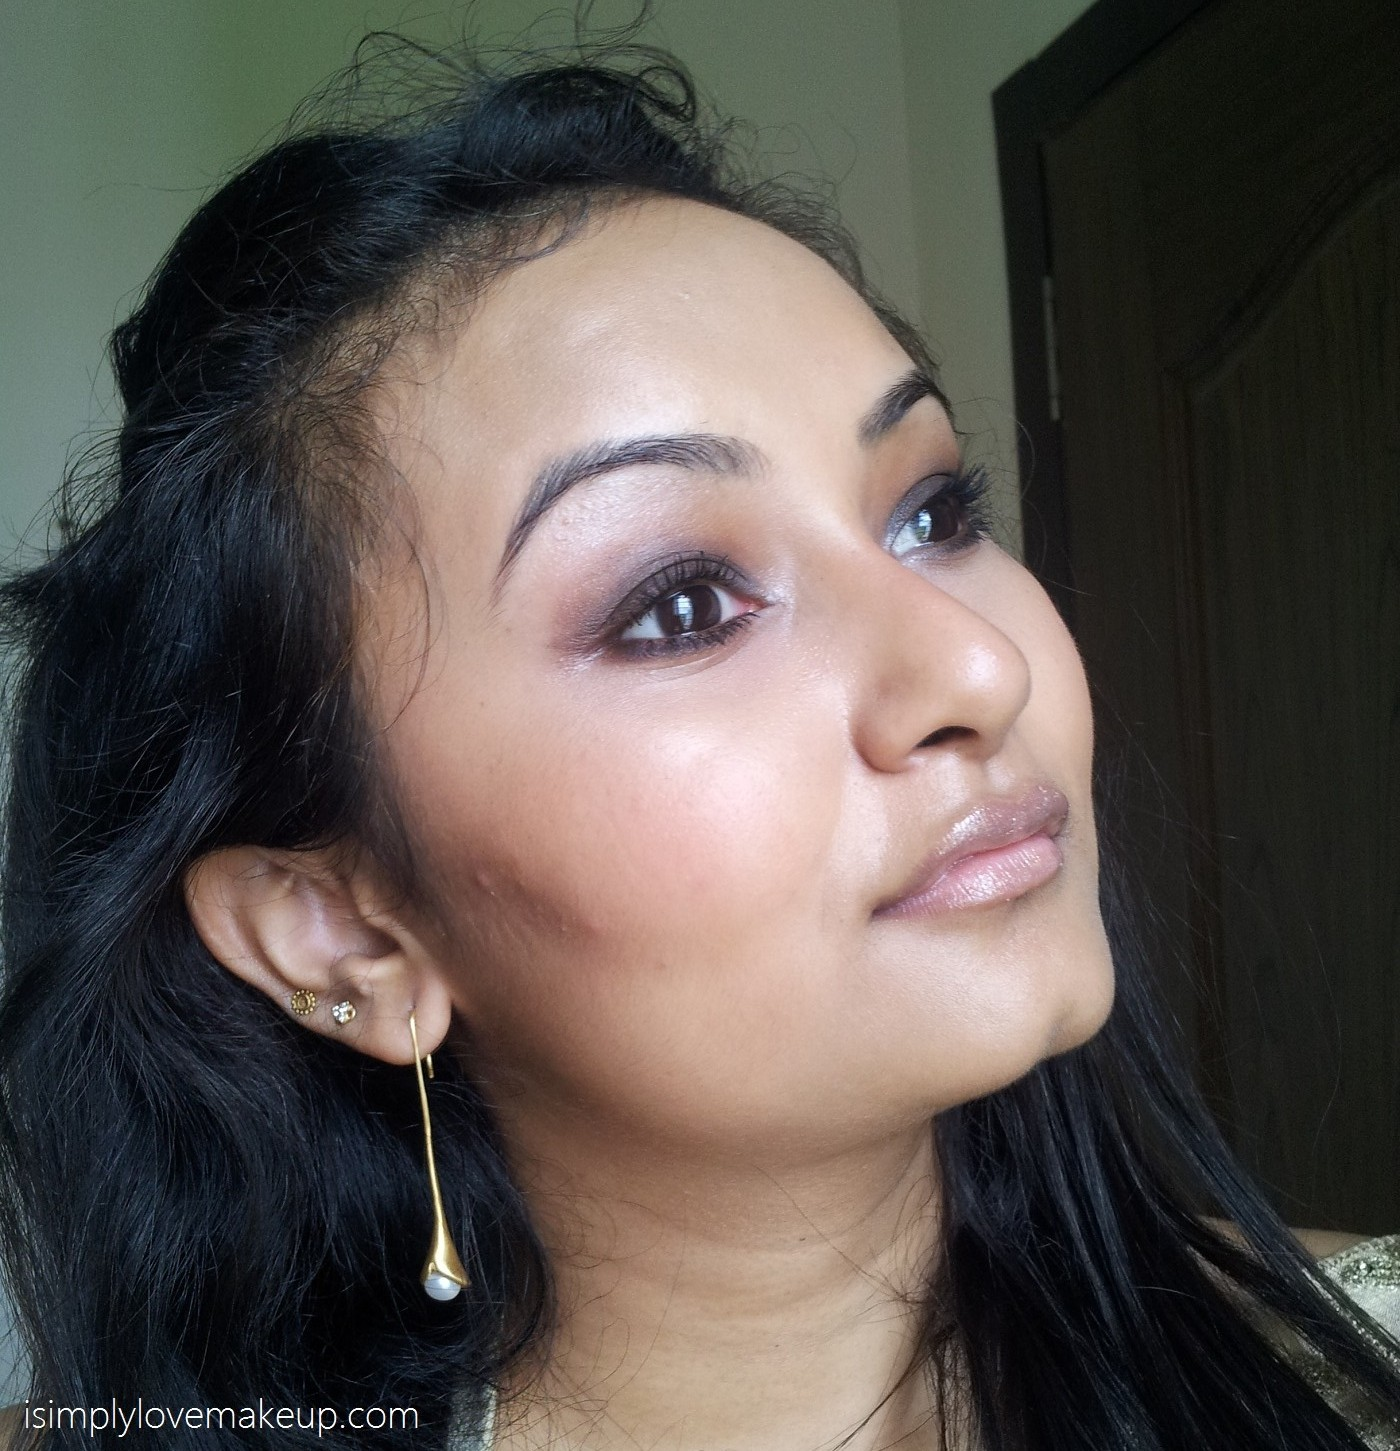 Lakme Absolute Plump and Shine 3D Gloss in Peach Shine - Review